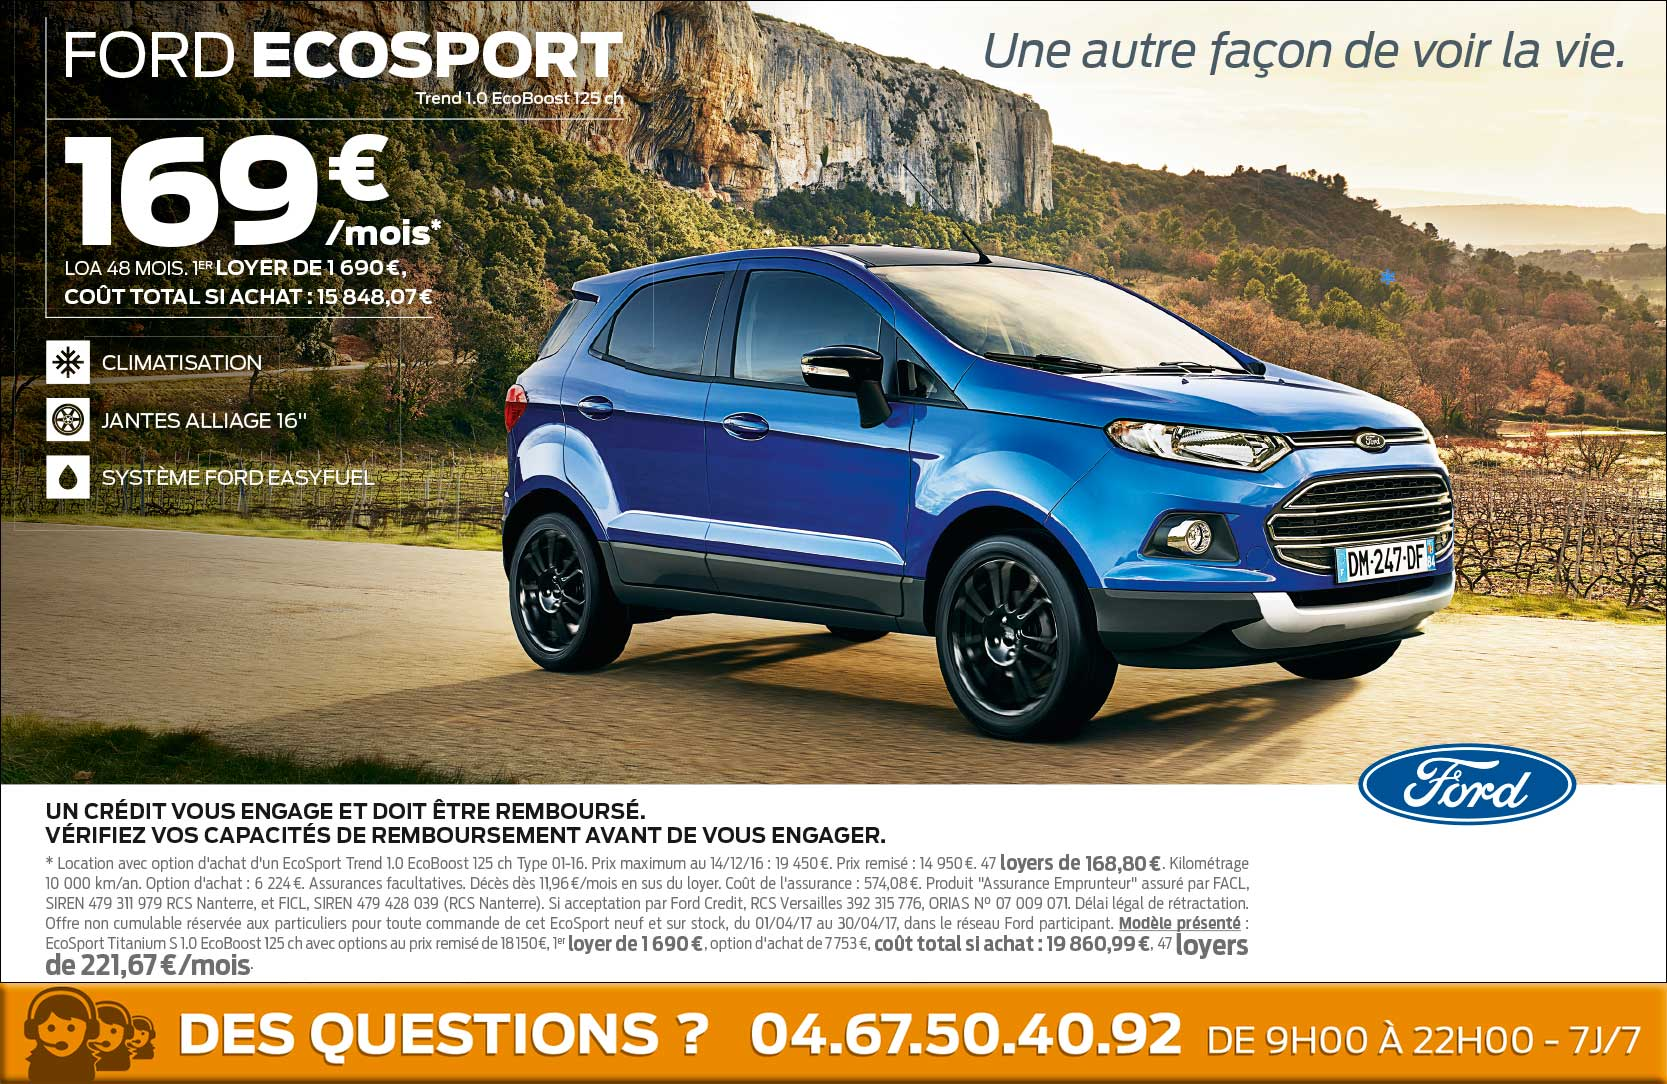 Ford ecosport a 169 mois ford grim auto savab for Garage ford saval valence